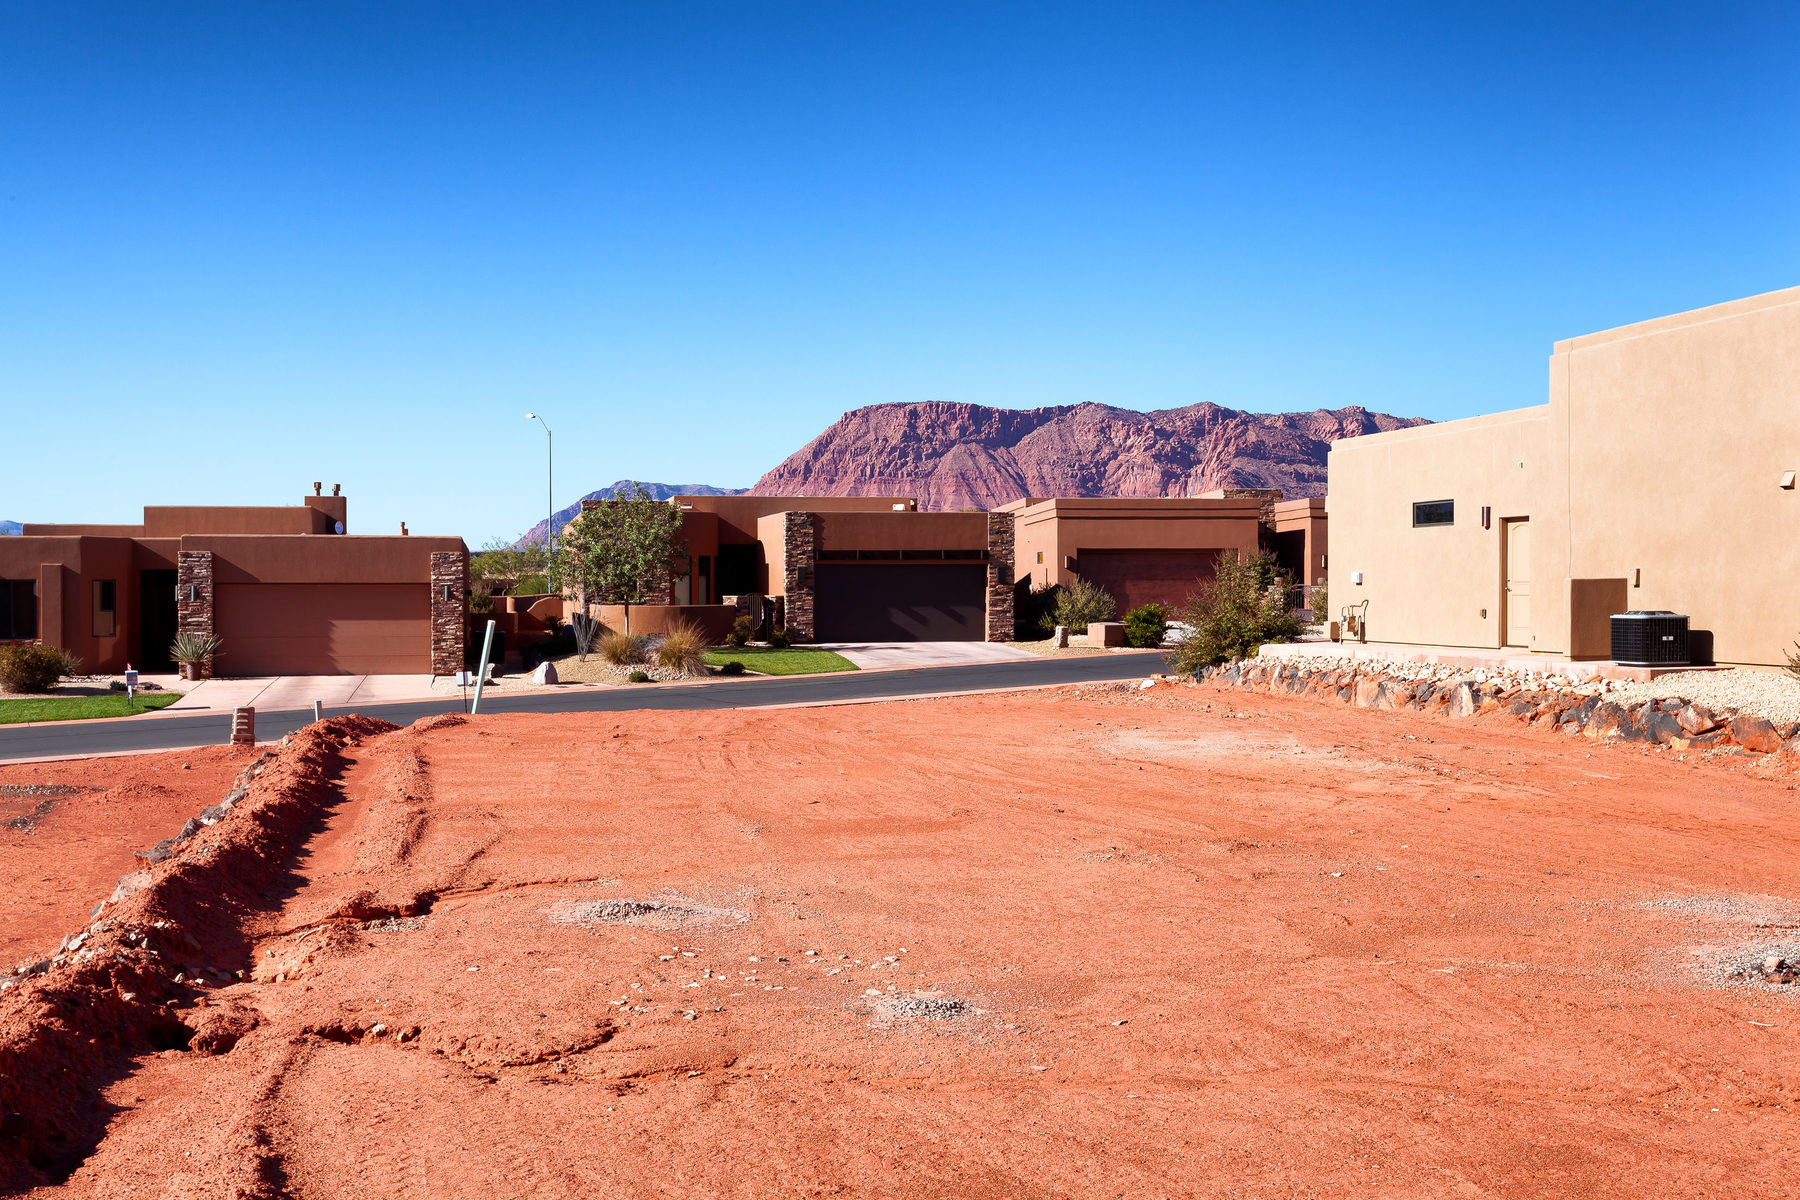 Terreno per Vendita alle ore Exclusive Tuweap Point Lot 2090 N Tuweap Dr Lot 56 St. George, Utah, 84770 Stati Uniti